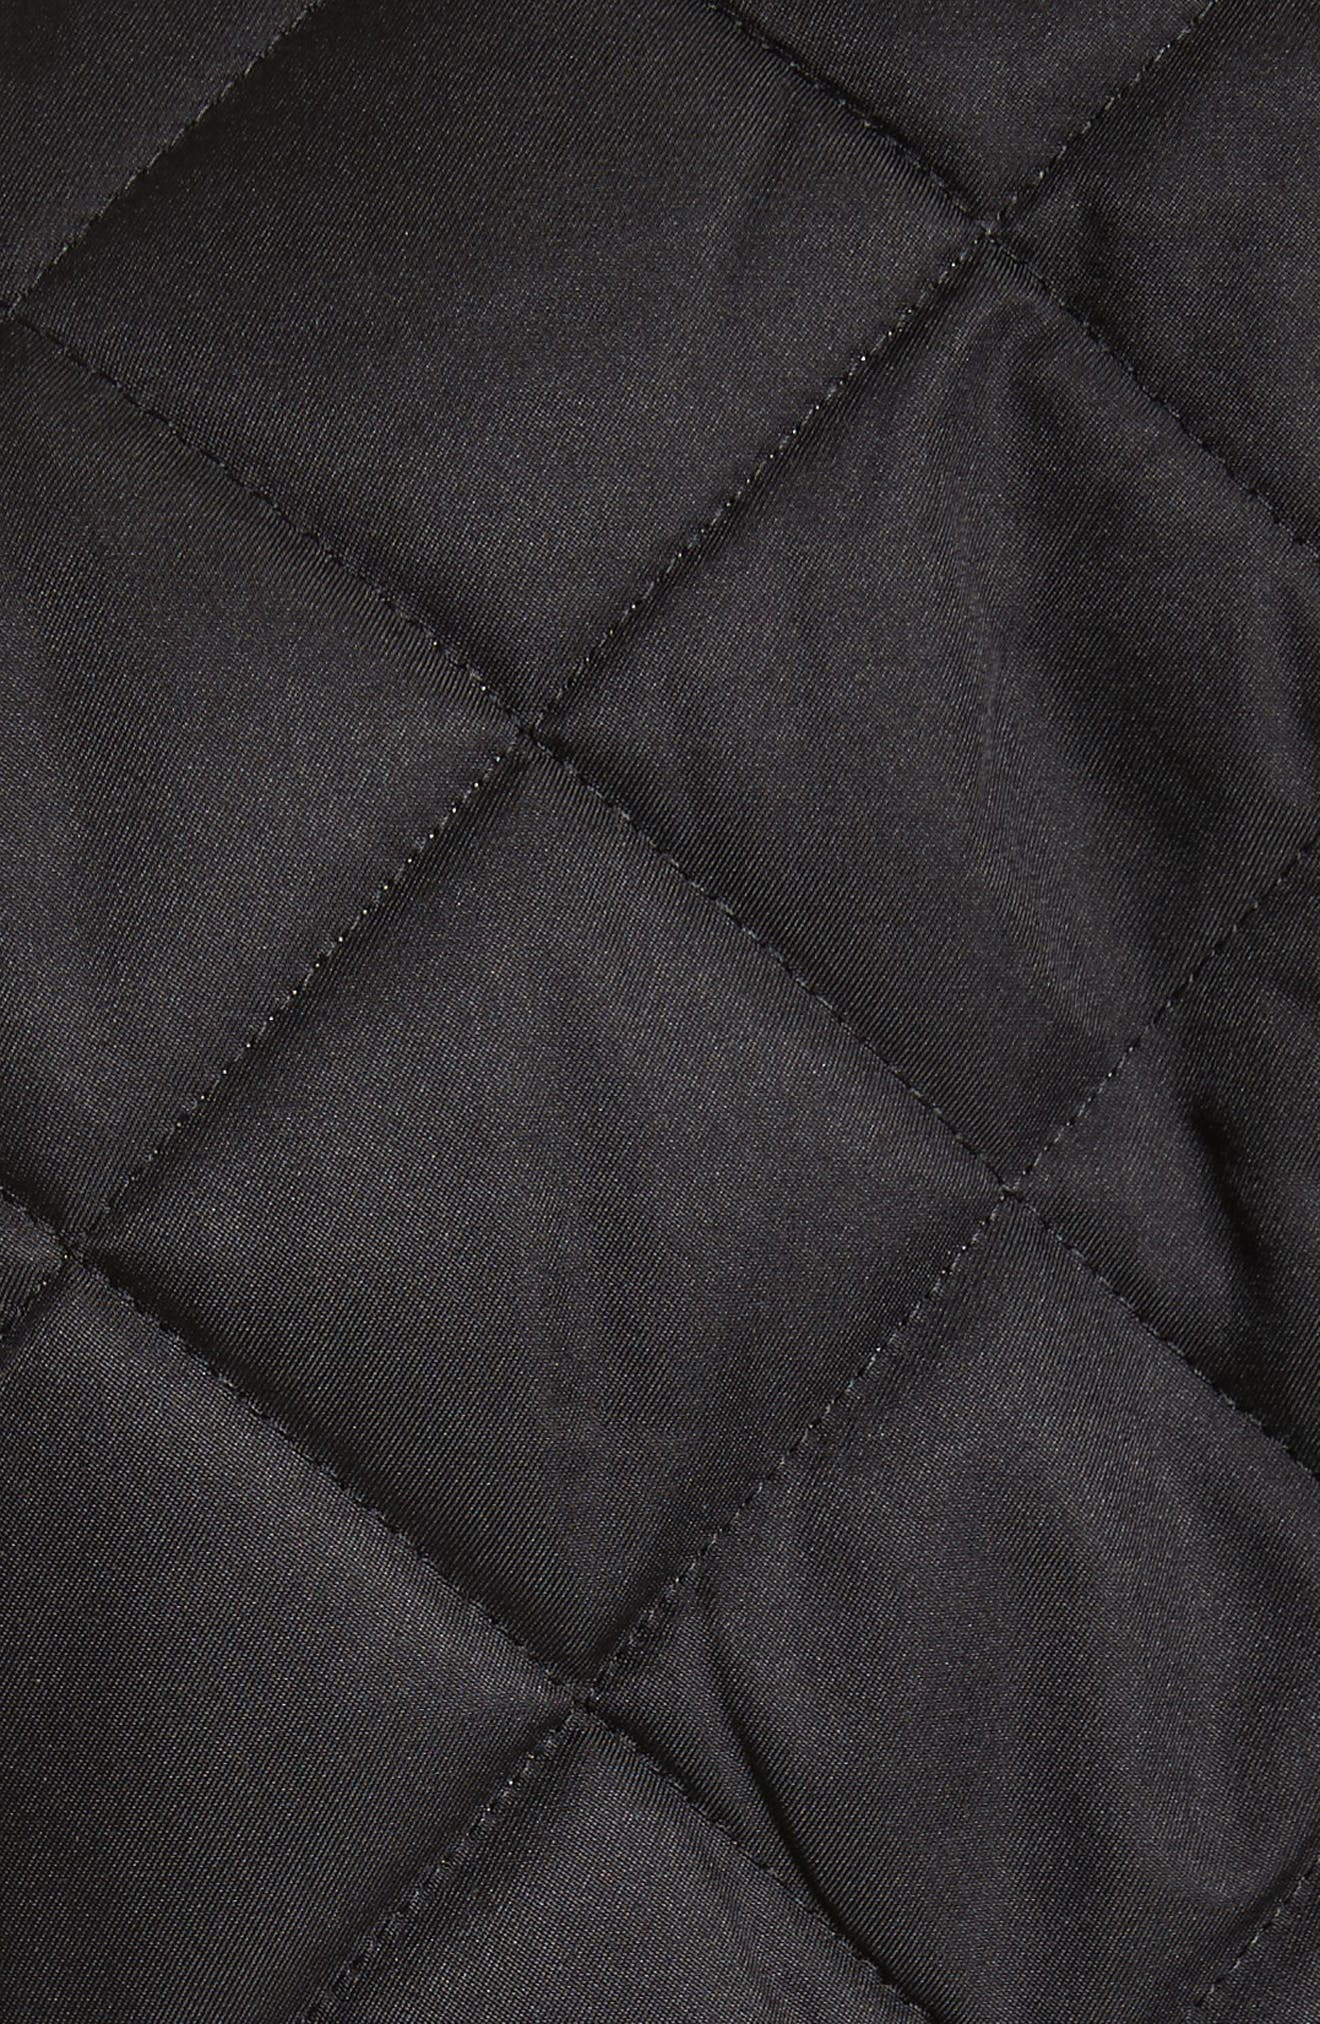 BURBERRY, Frankby Quilted Jacket, Alternate thumbnail 6, color, 001